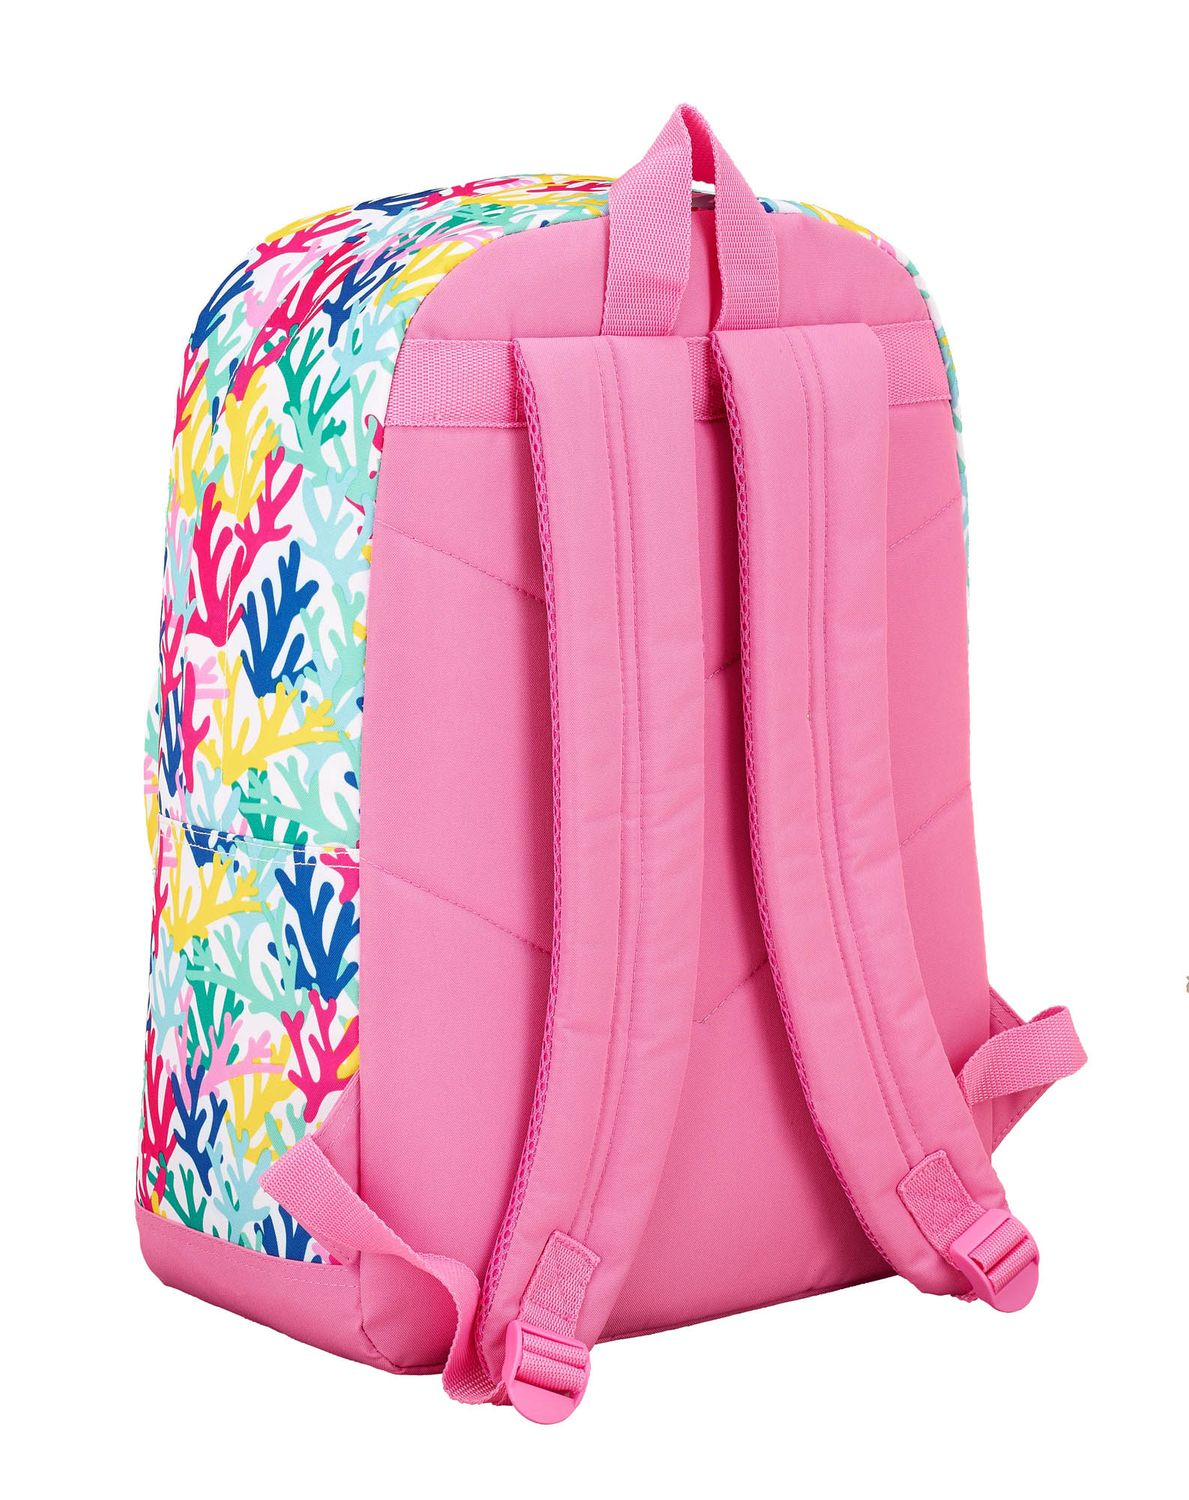 BENETTON Laptop Backpack CORALLI 15.6'' – image 2